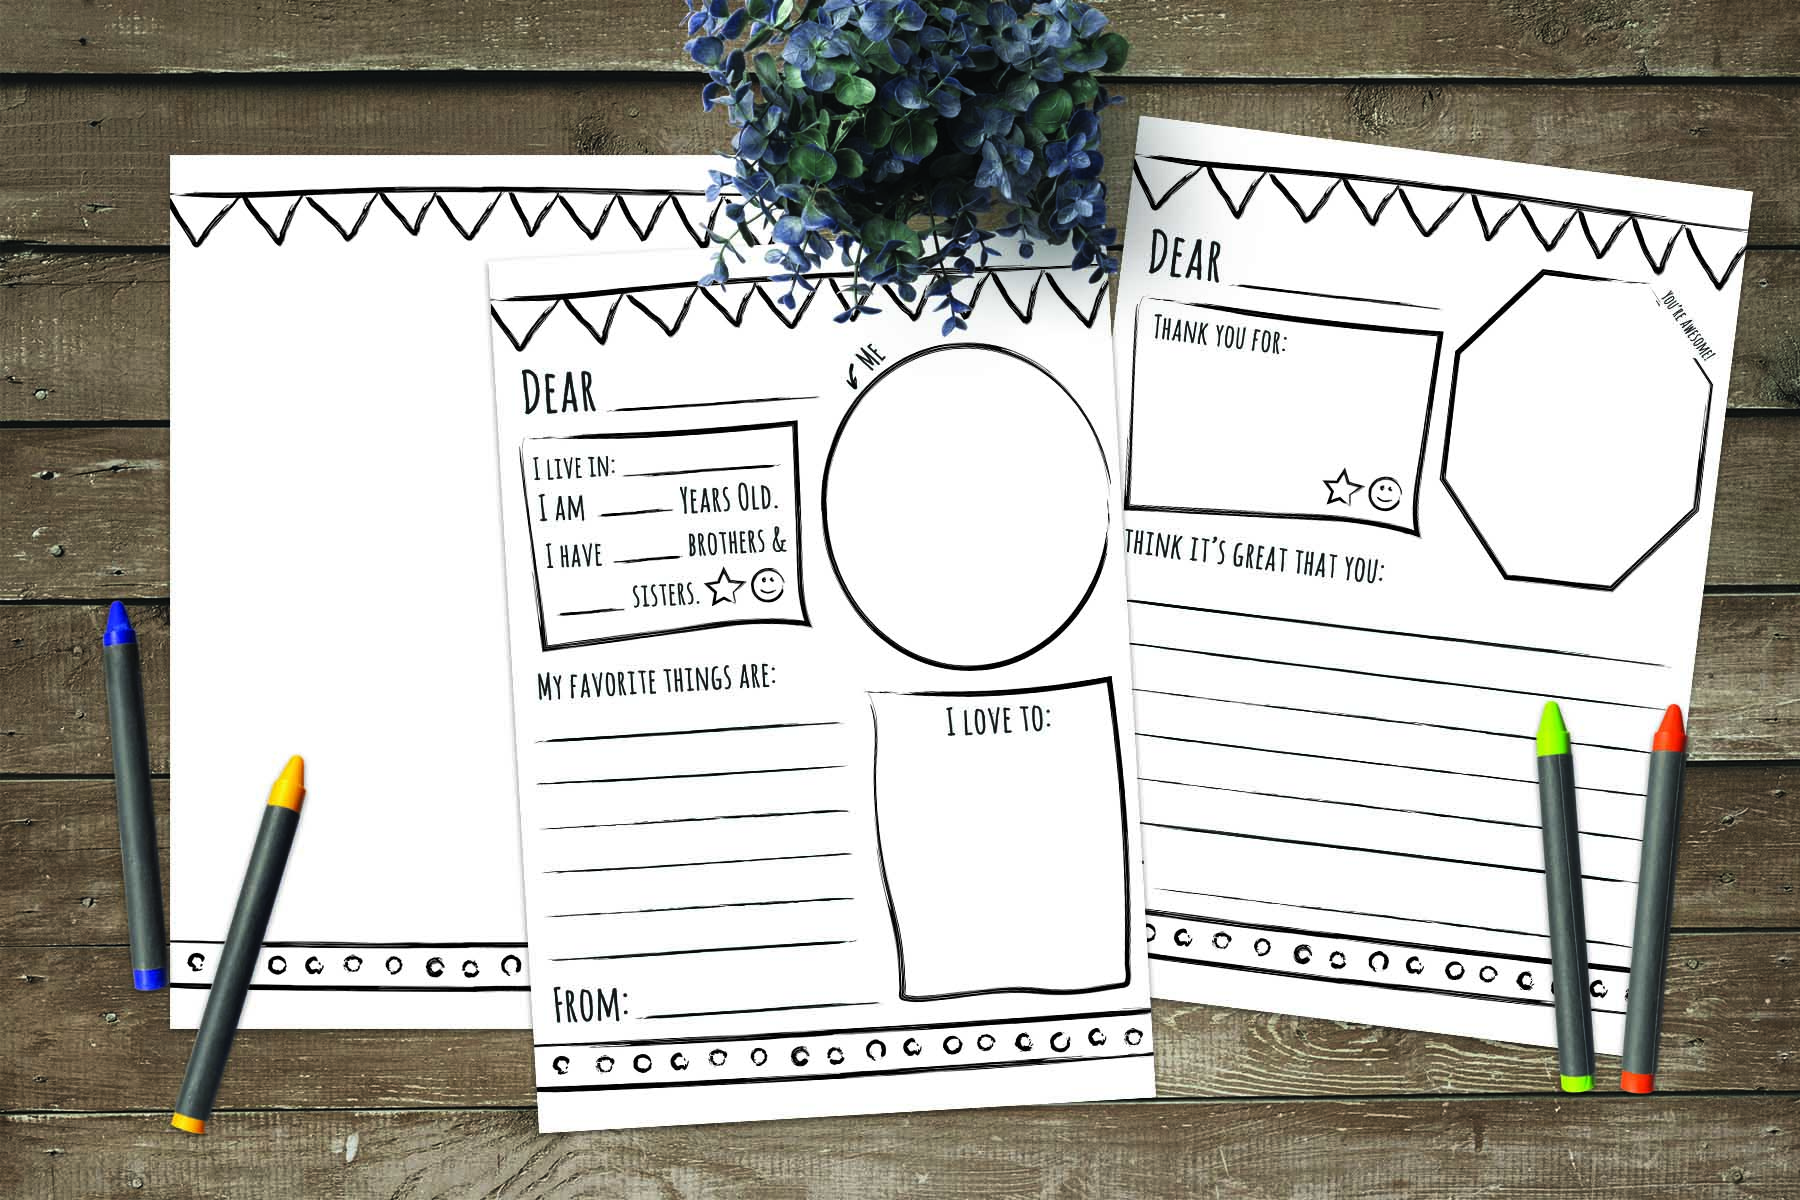 Activity days thank you pen pal stationery printables for Idea door primary printables